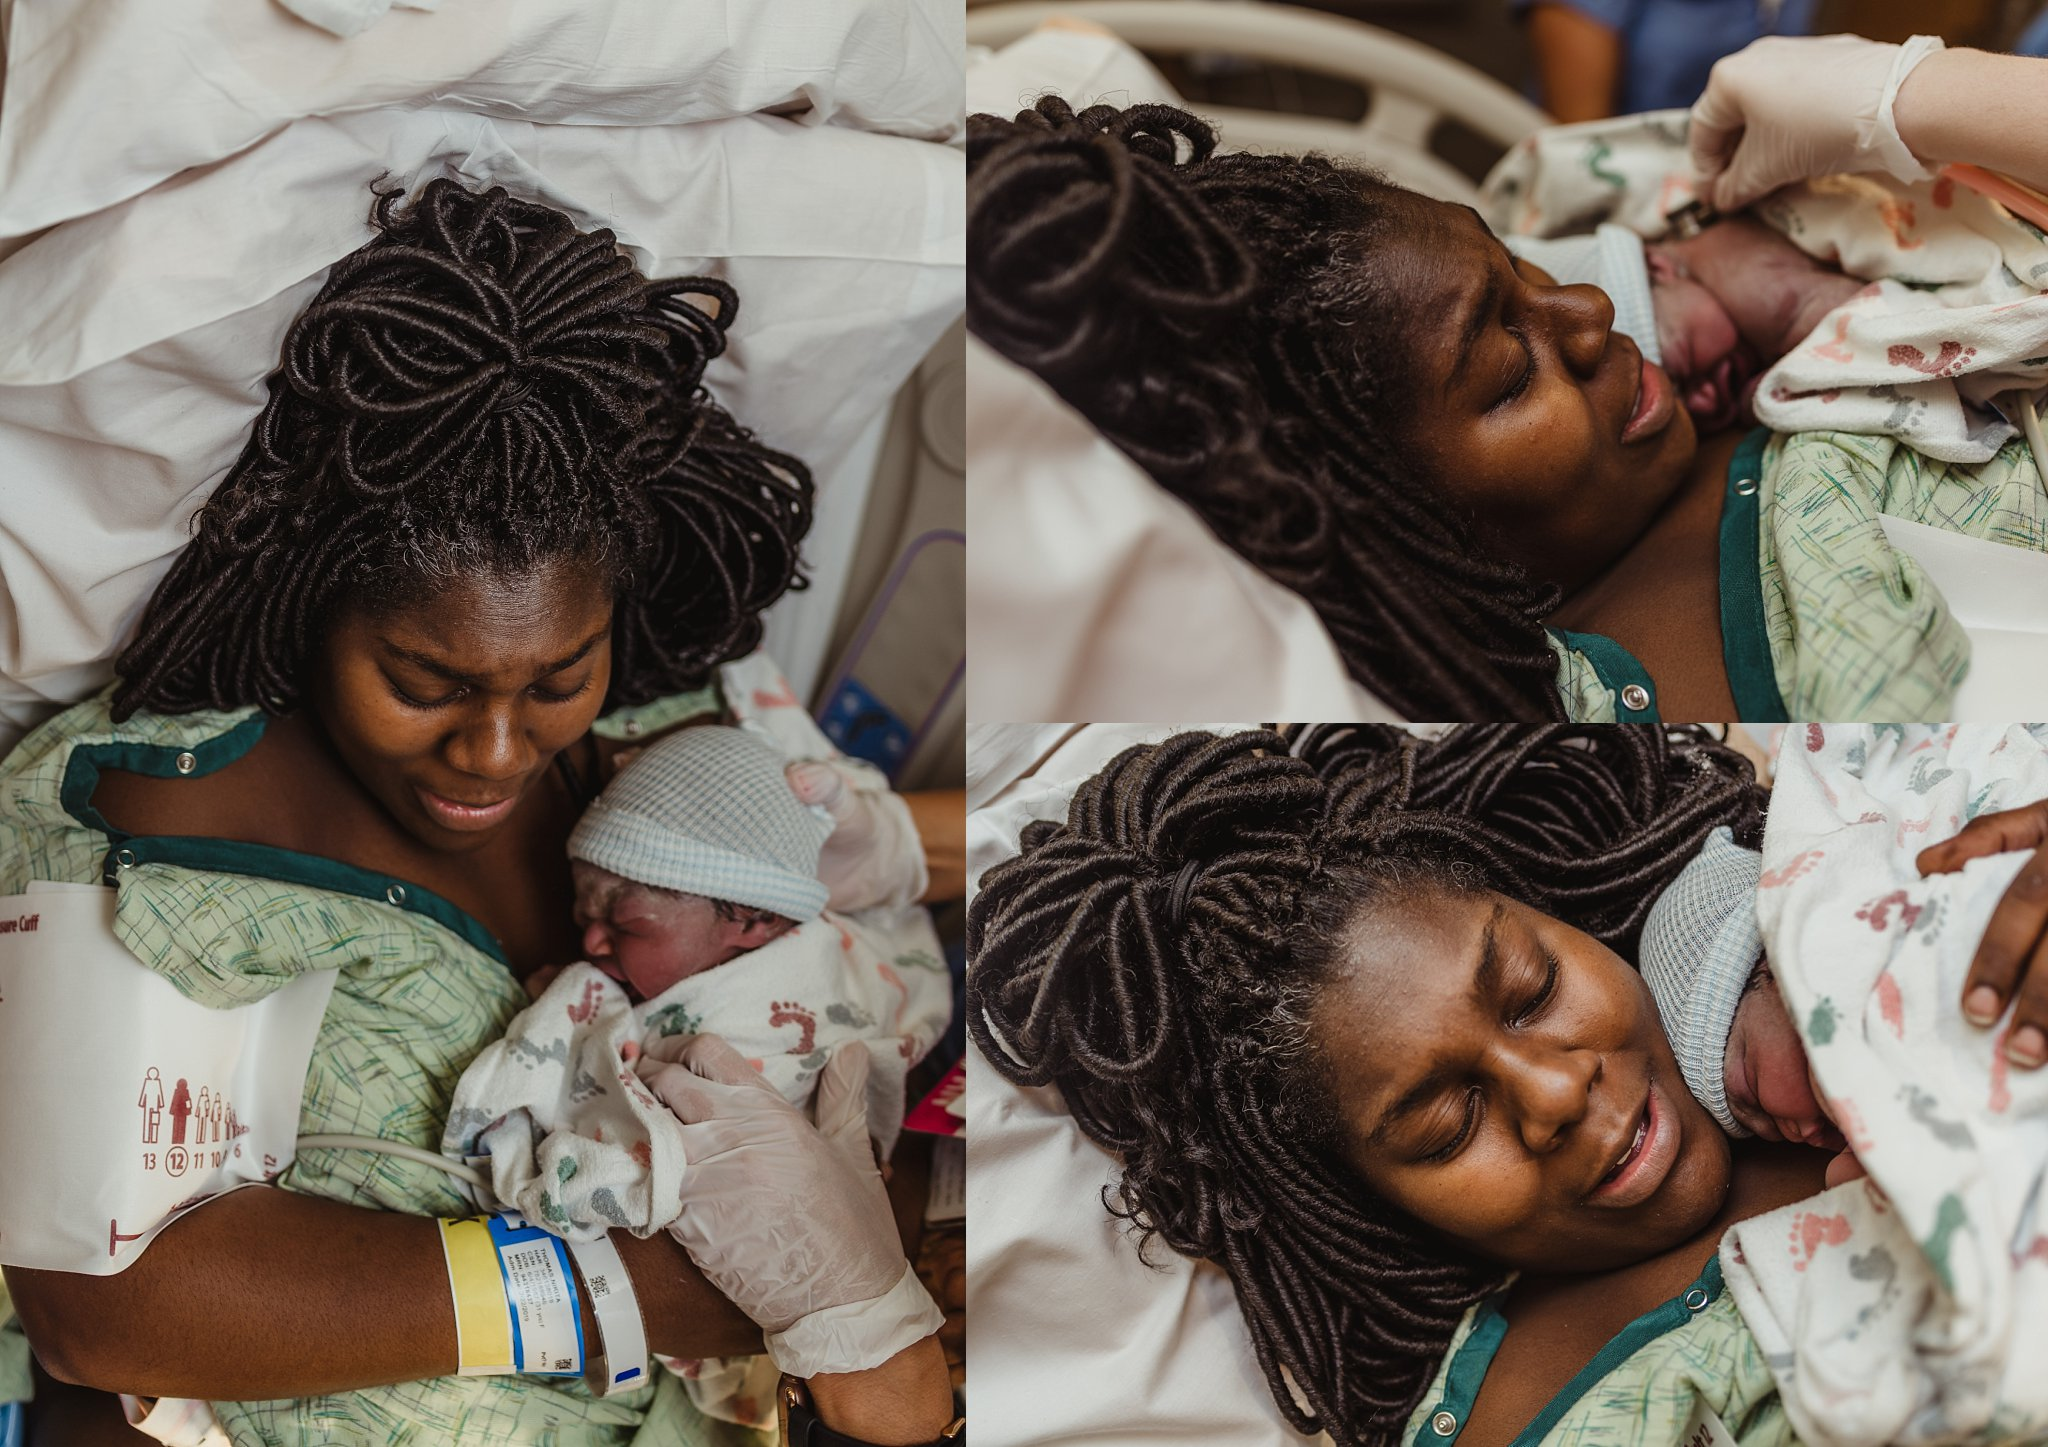 Mother receives baby boy covered in vernix at moment of birth.